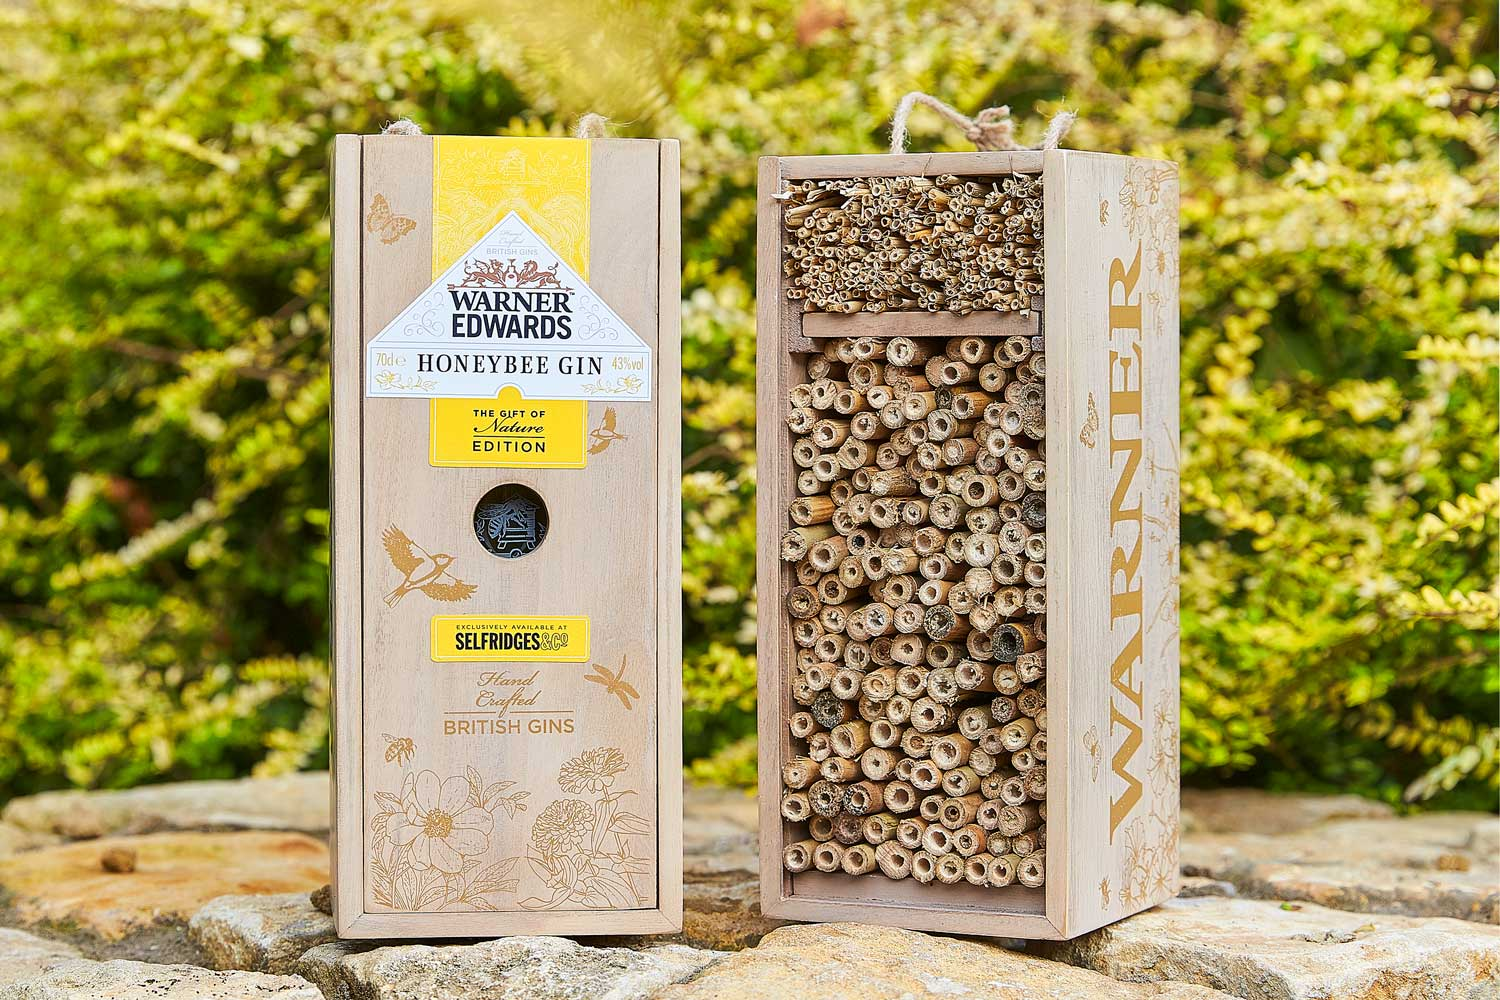 Progress Packaging Wooden Bird Box Insect Hotel Drinks Gin Spirits Liquor Fsc Approved Recycled Biodegradable Reusable Upcycling Responsibly Sourced Eco Friendly Environmentally Friendly 7